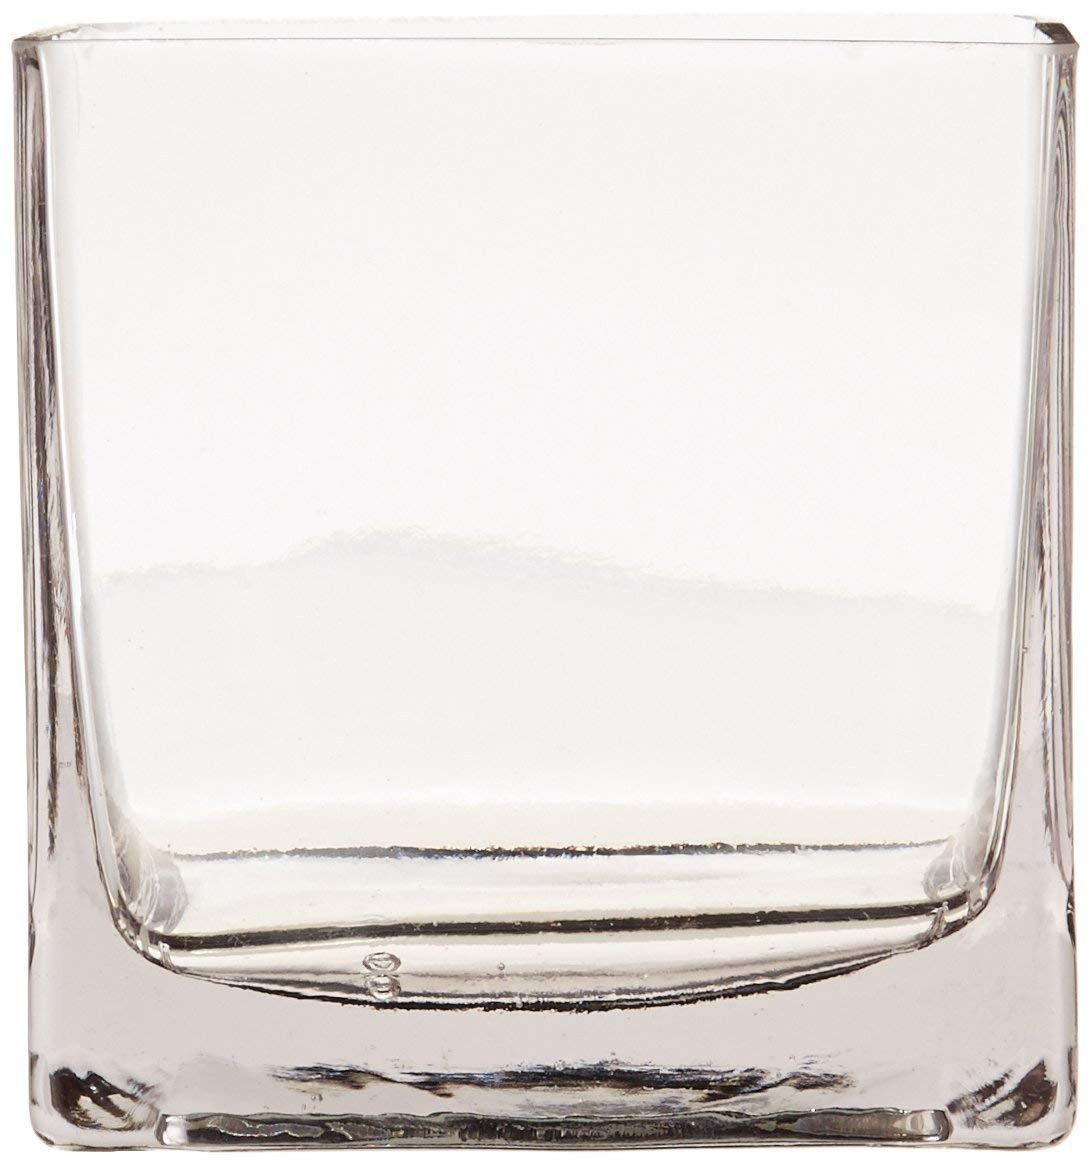 vision glass vases wholesale of amazon com 12piece 4 square crystal clear glass vase home kitchen for 61odrrfbtgl sl1164